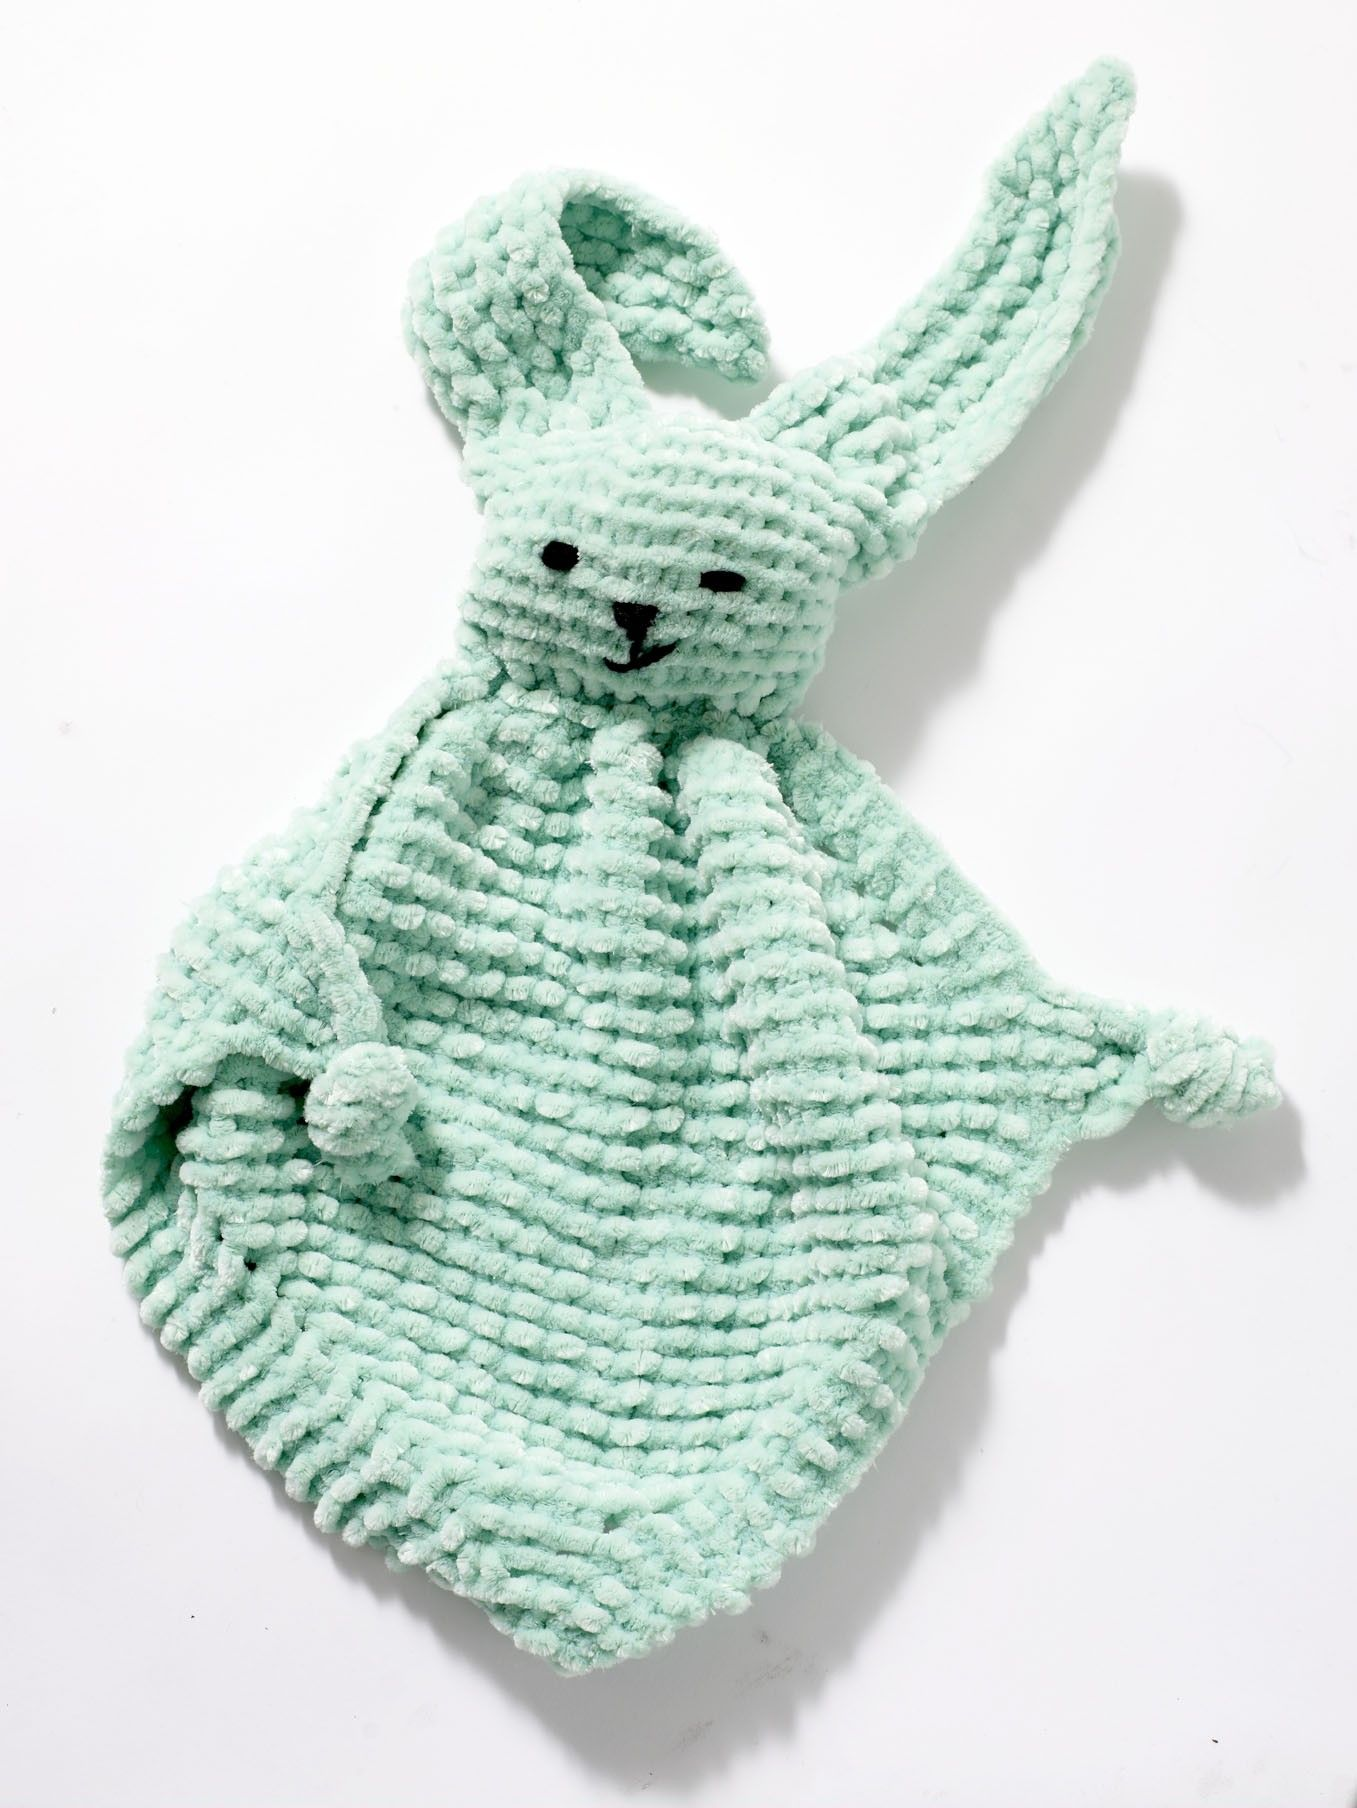 Bunny Blanket Buddy Pattern (Knit) Free download from Lion Brand ...